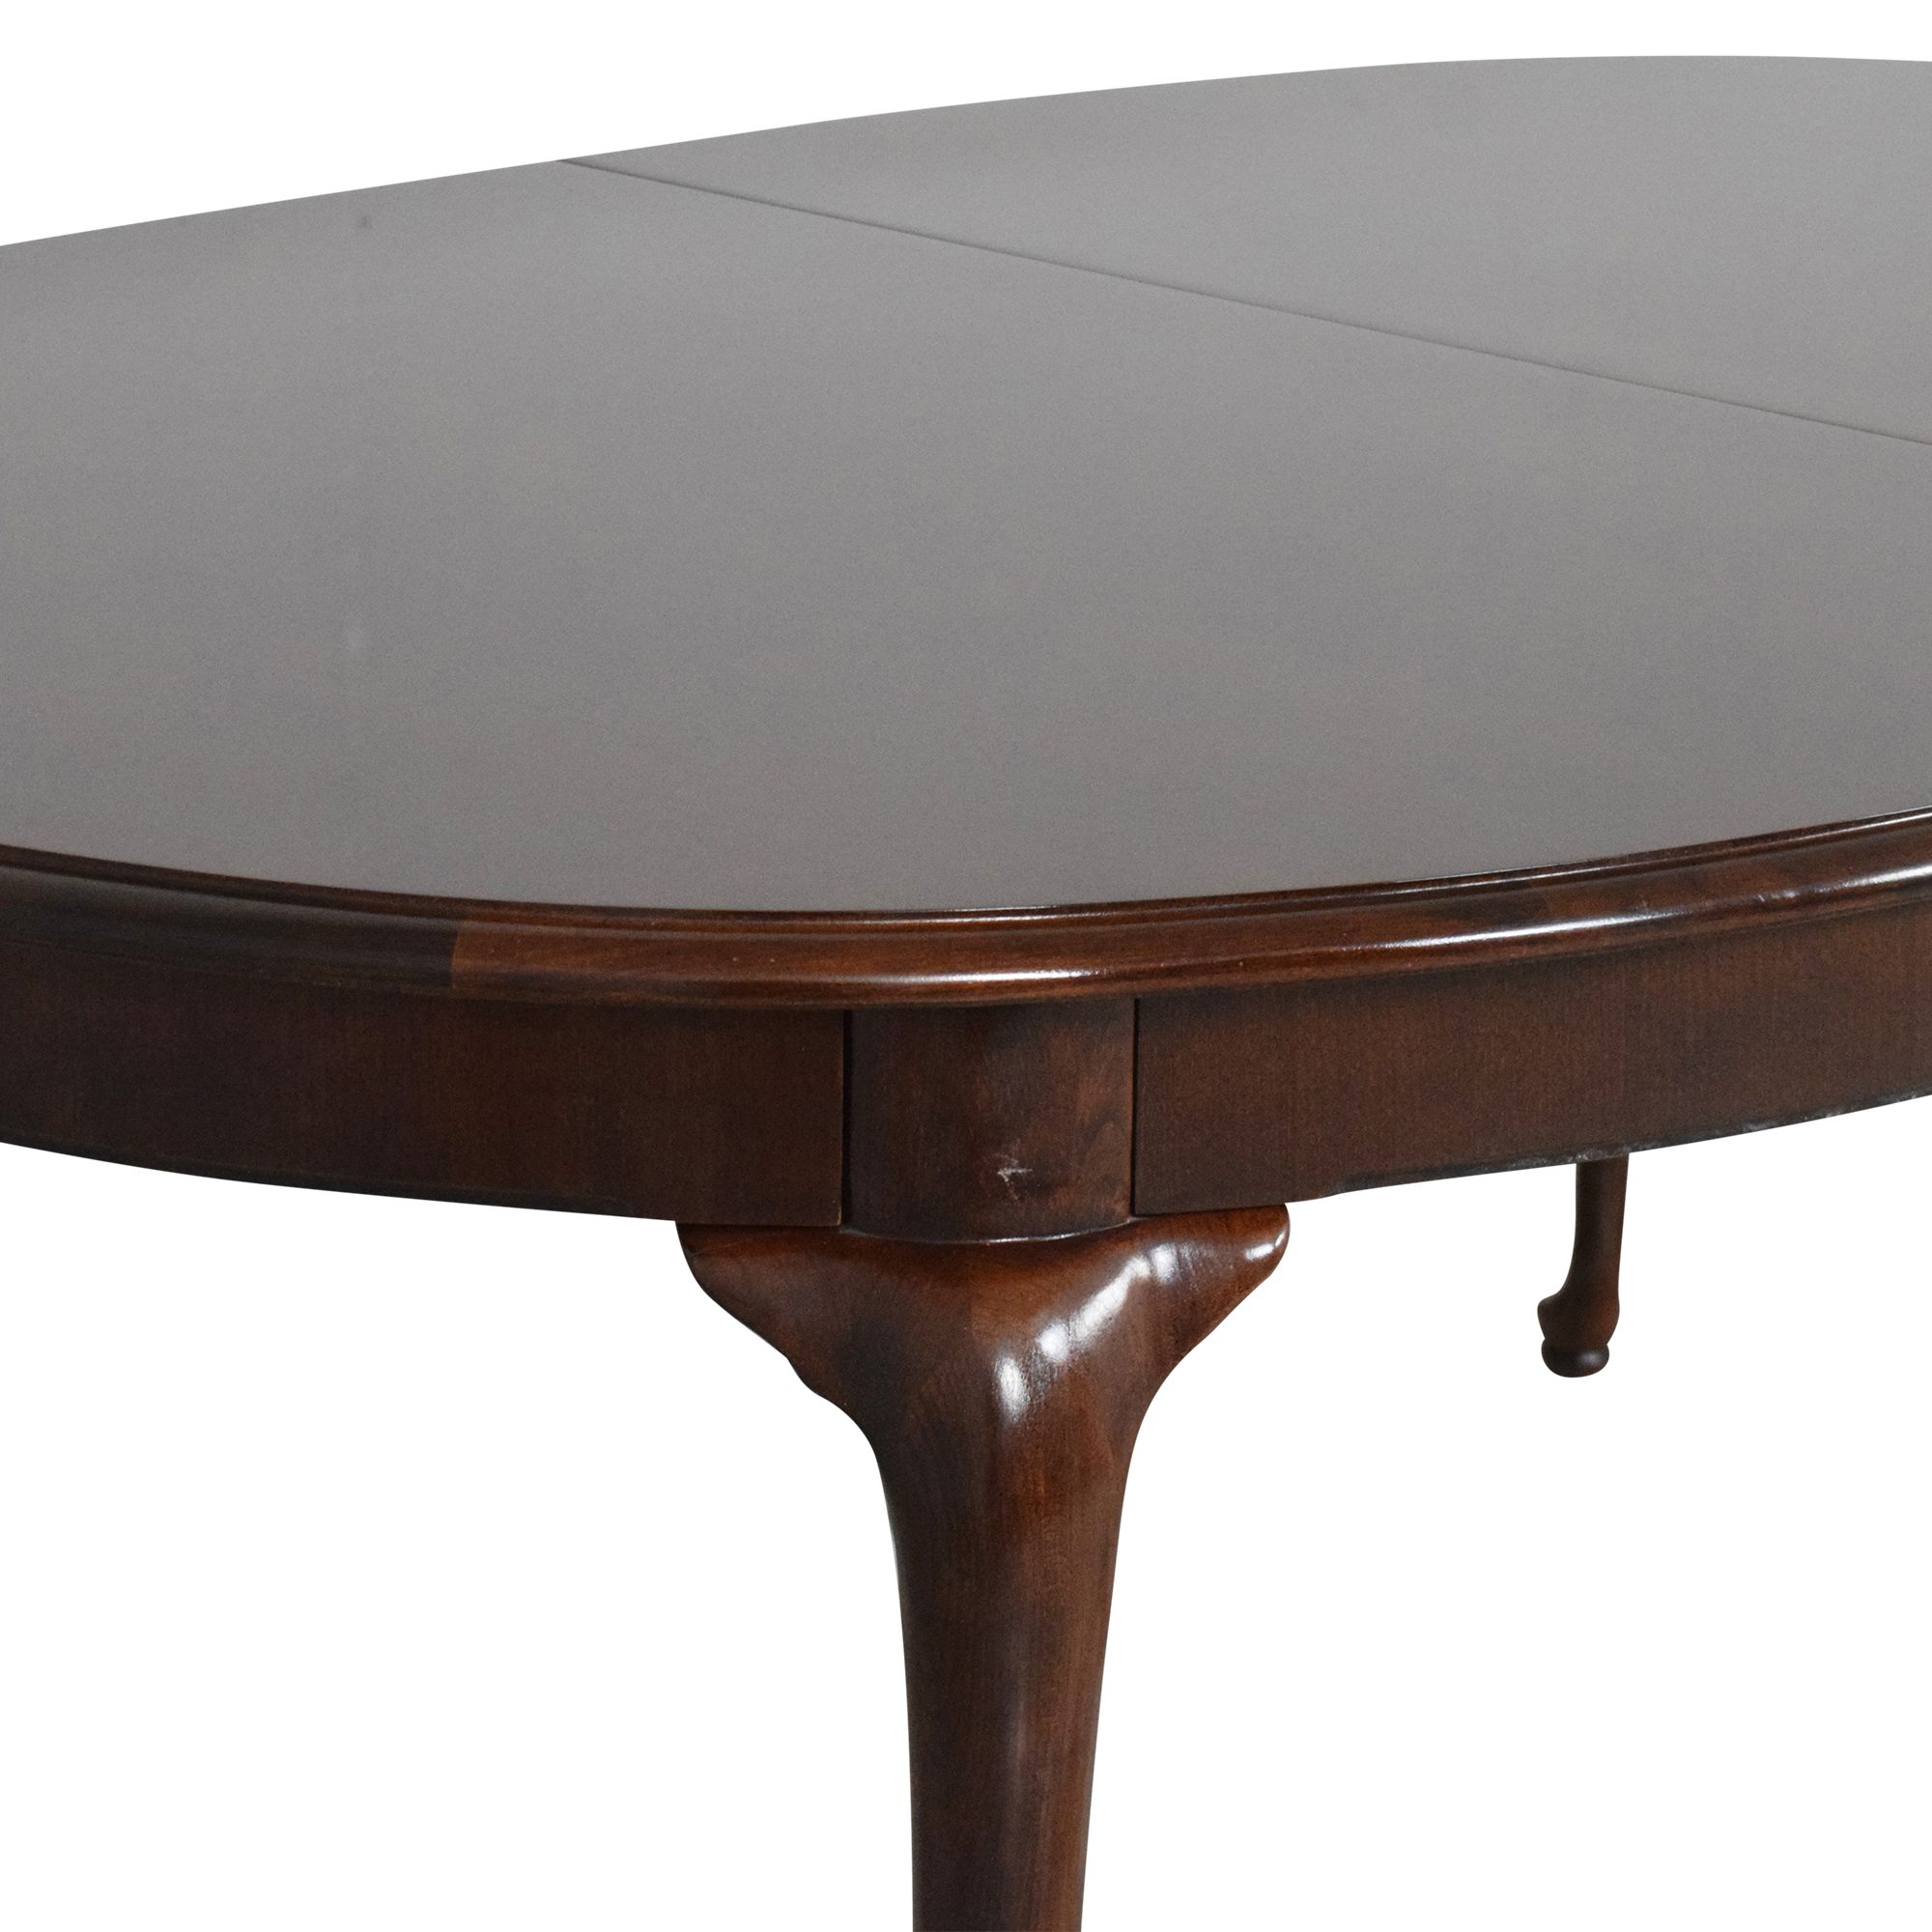 Thomasville Thomasville Queen Anne Extendable Dining Table Dinner Tables